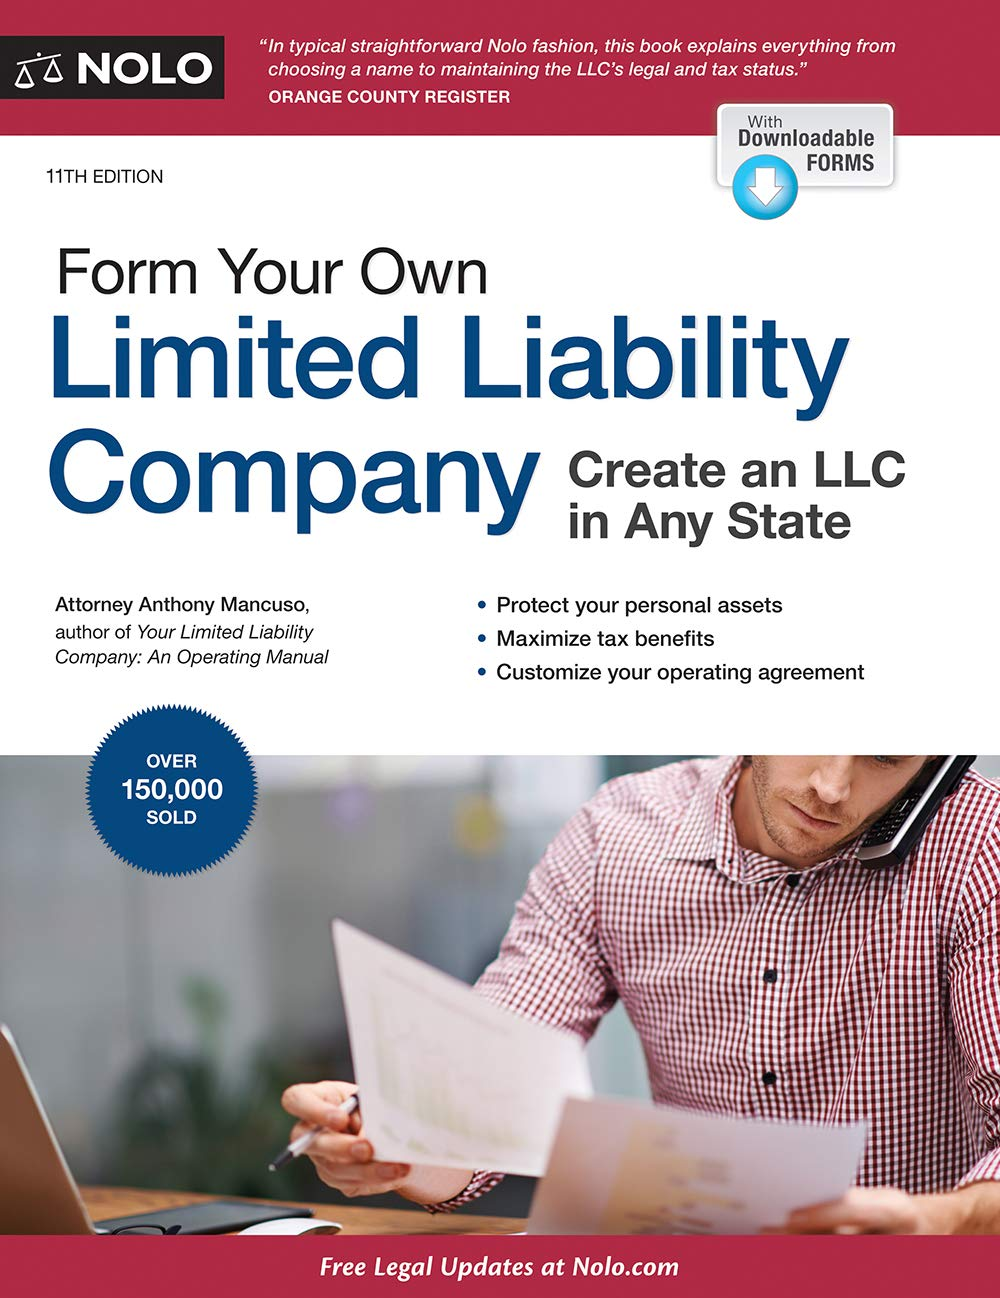 Form Your Own Limited Liability Company: Create An LLC in Any State by NOLO